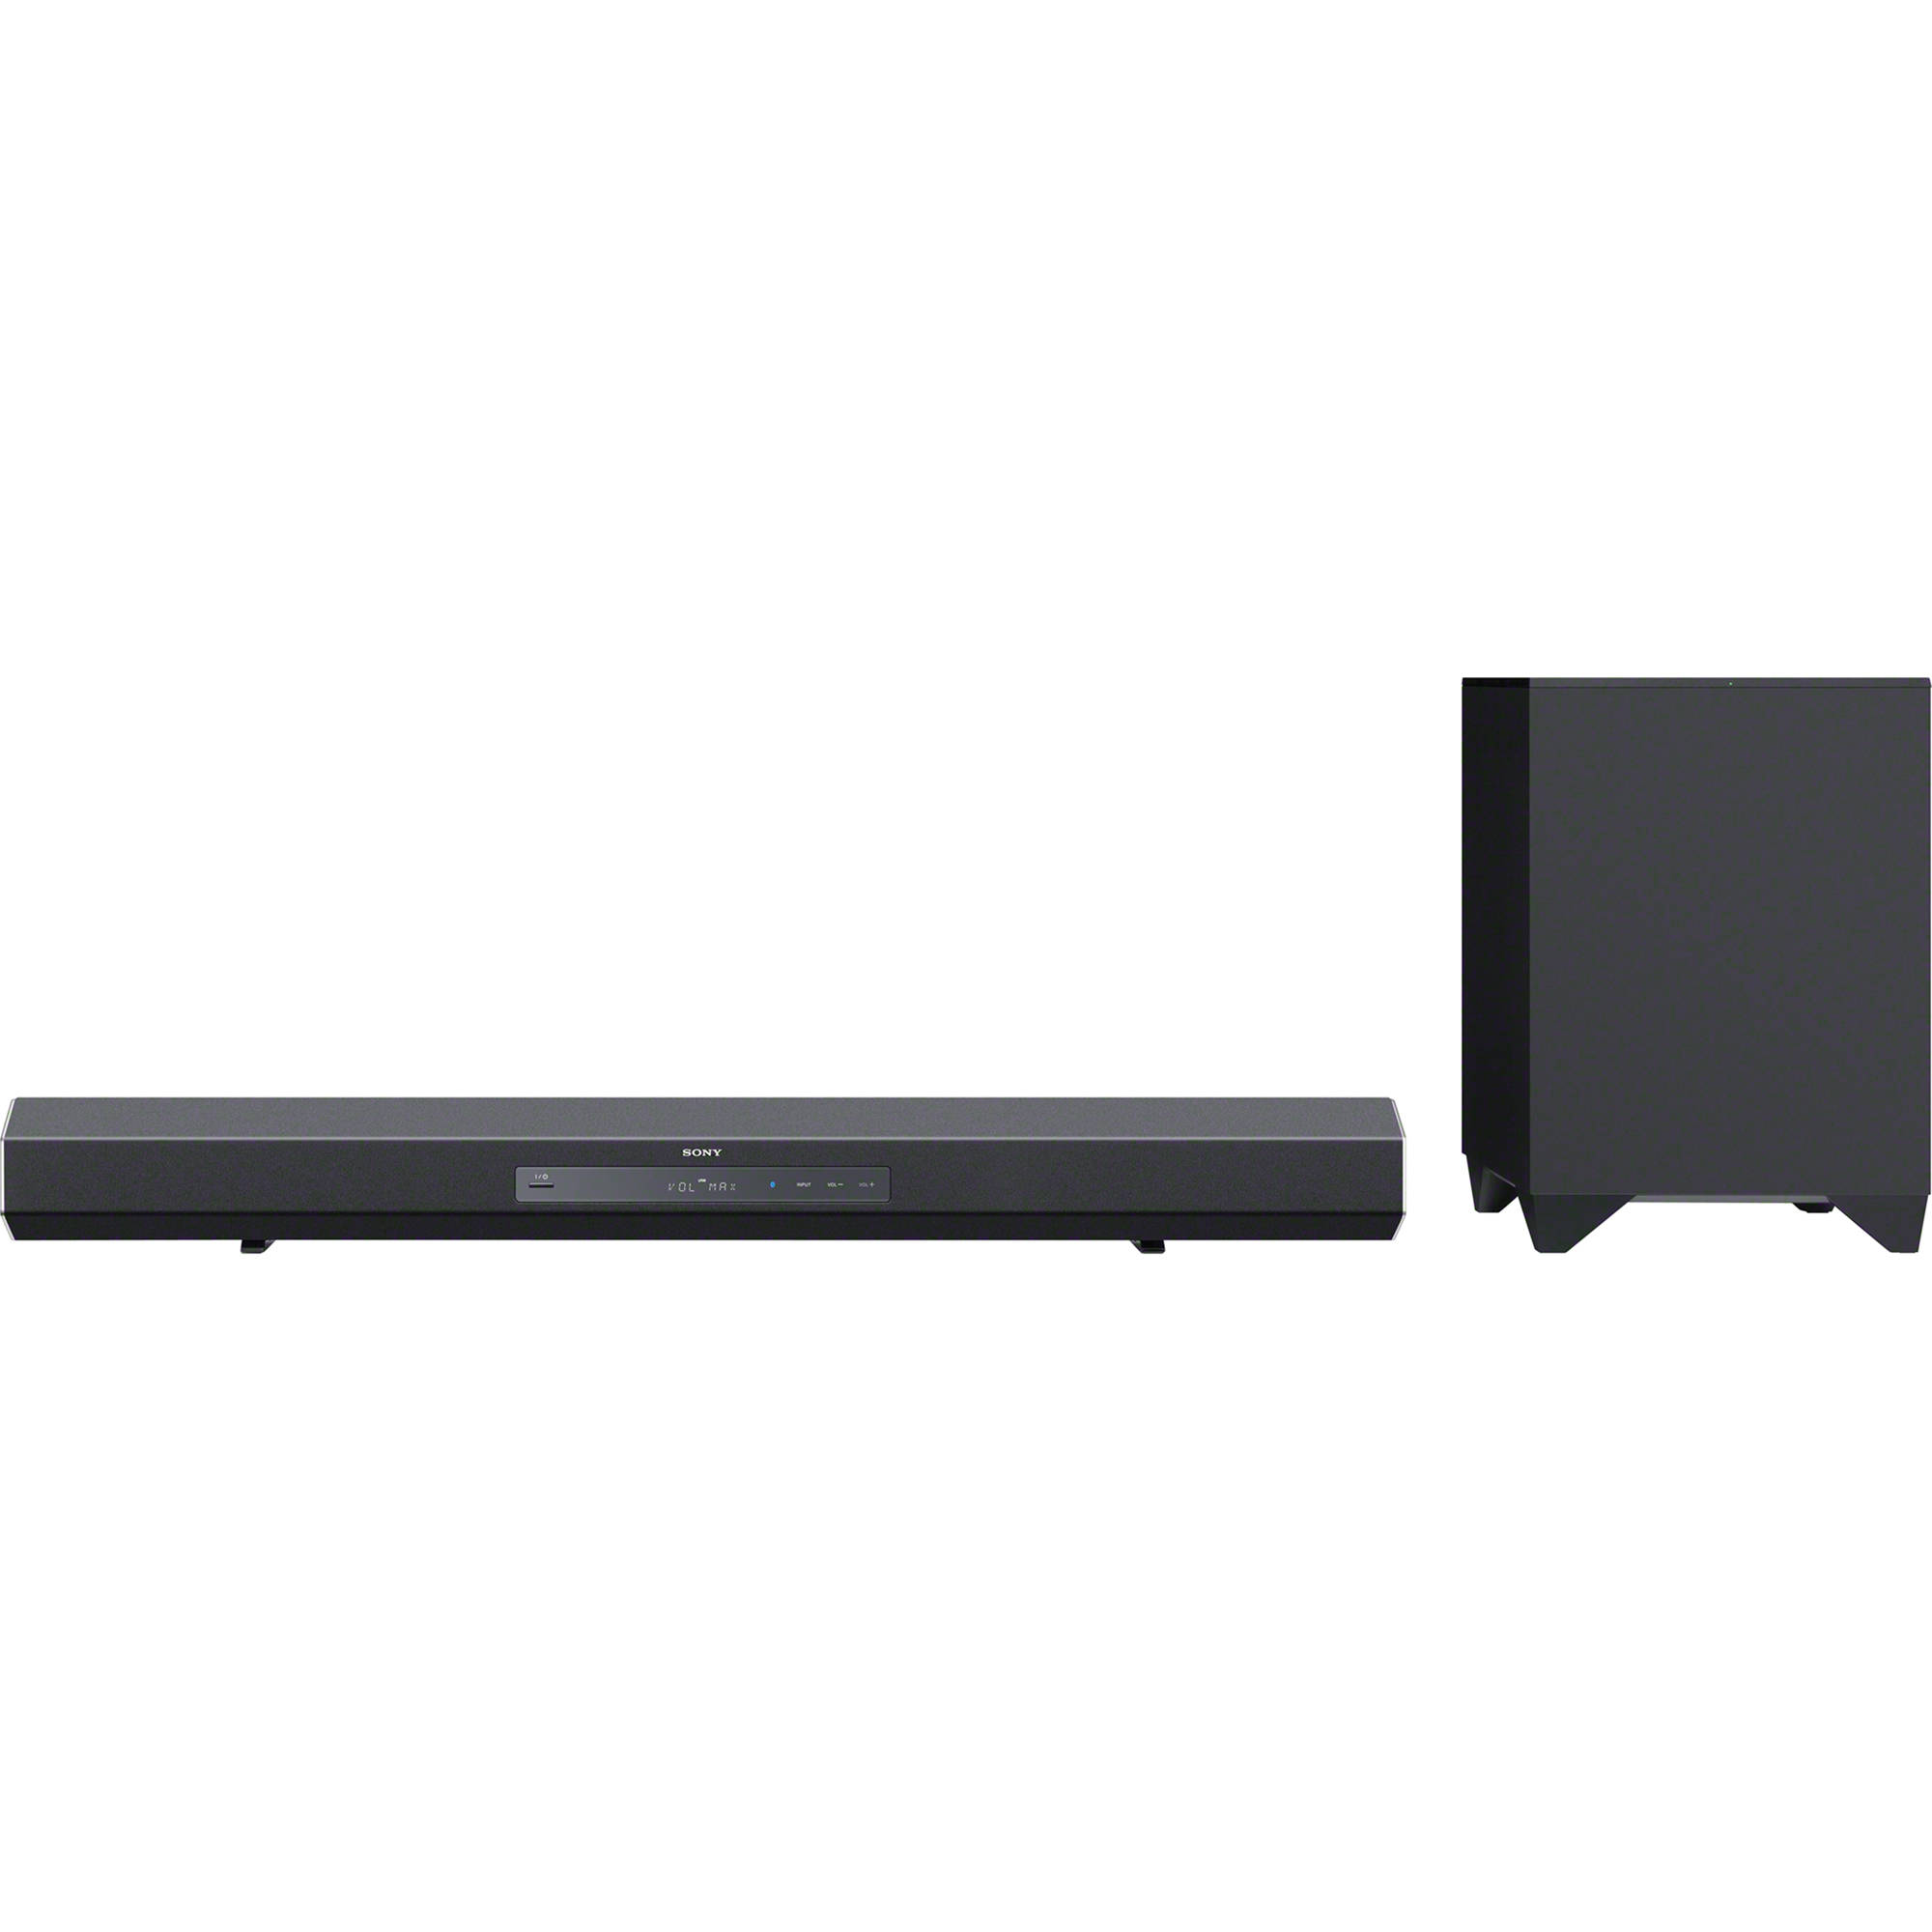 Sony Ht Ct260h Surround Sound Speaker Bar Wireless Subwoofer